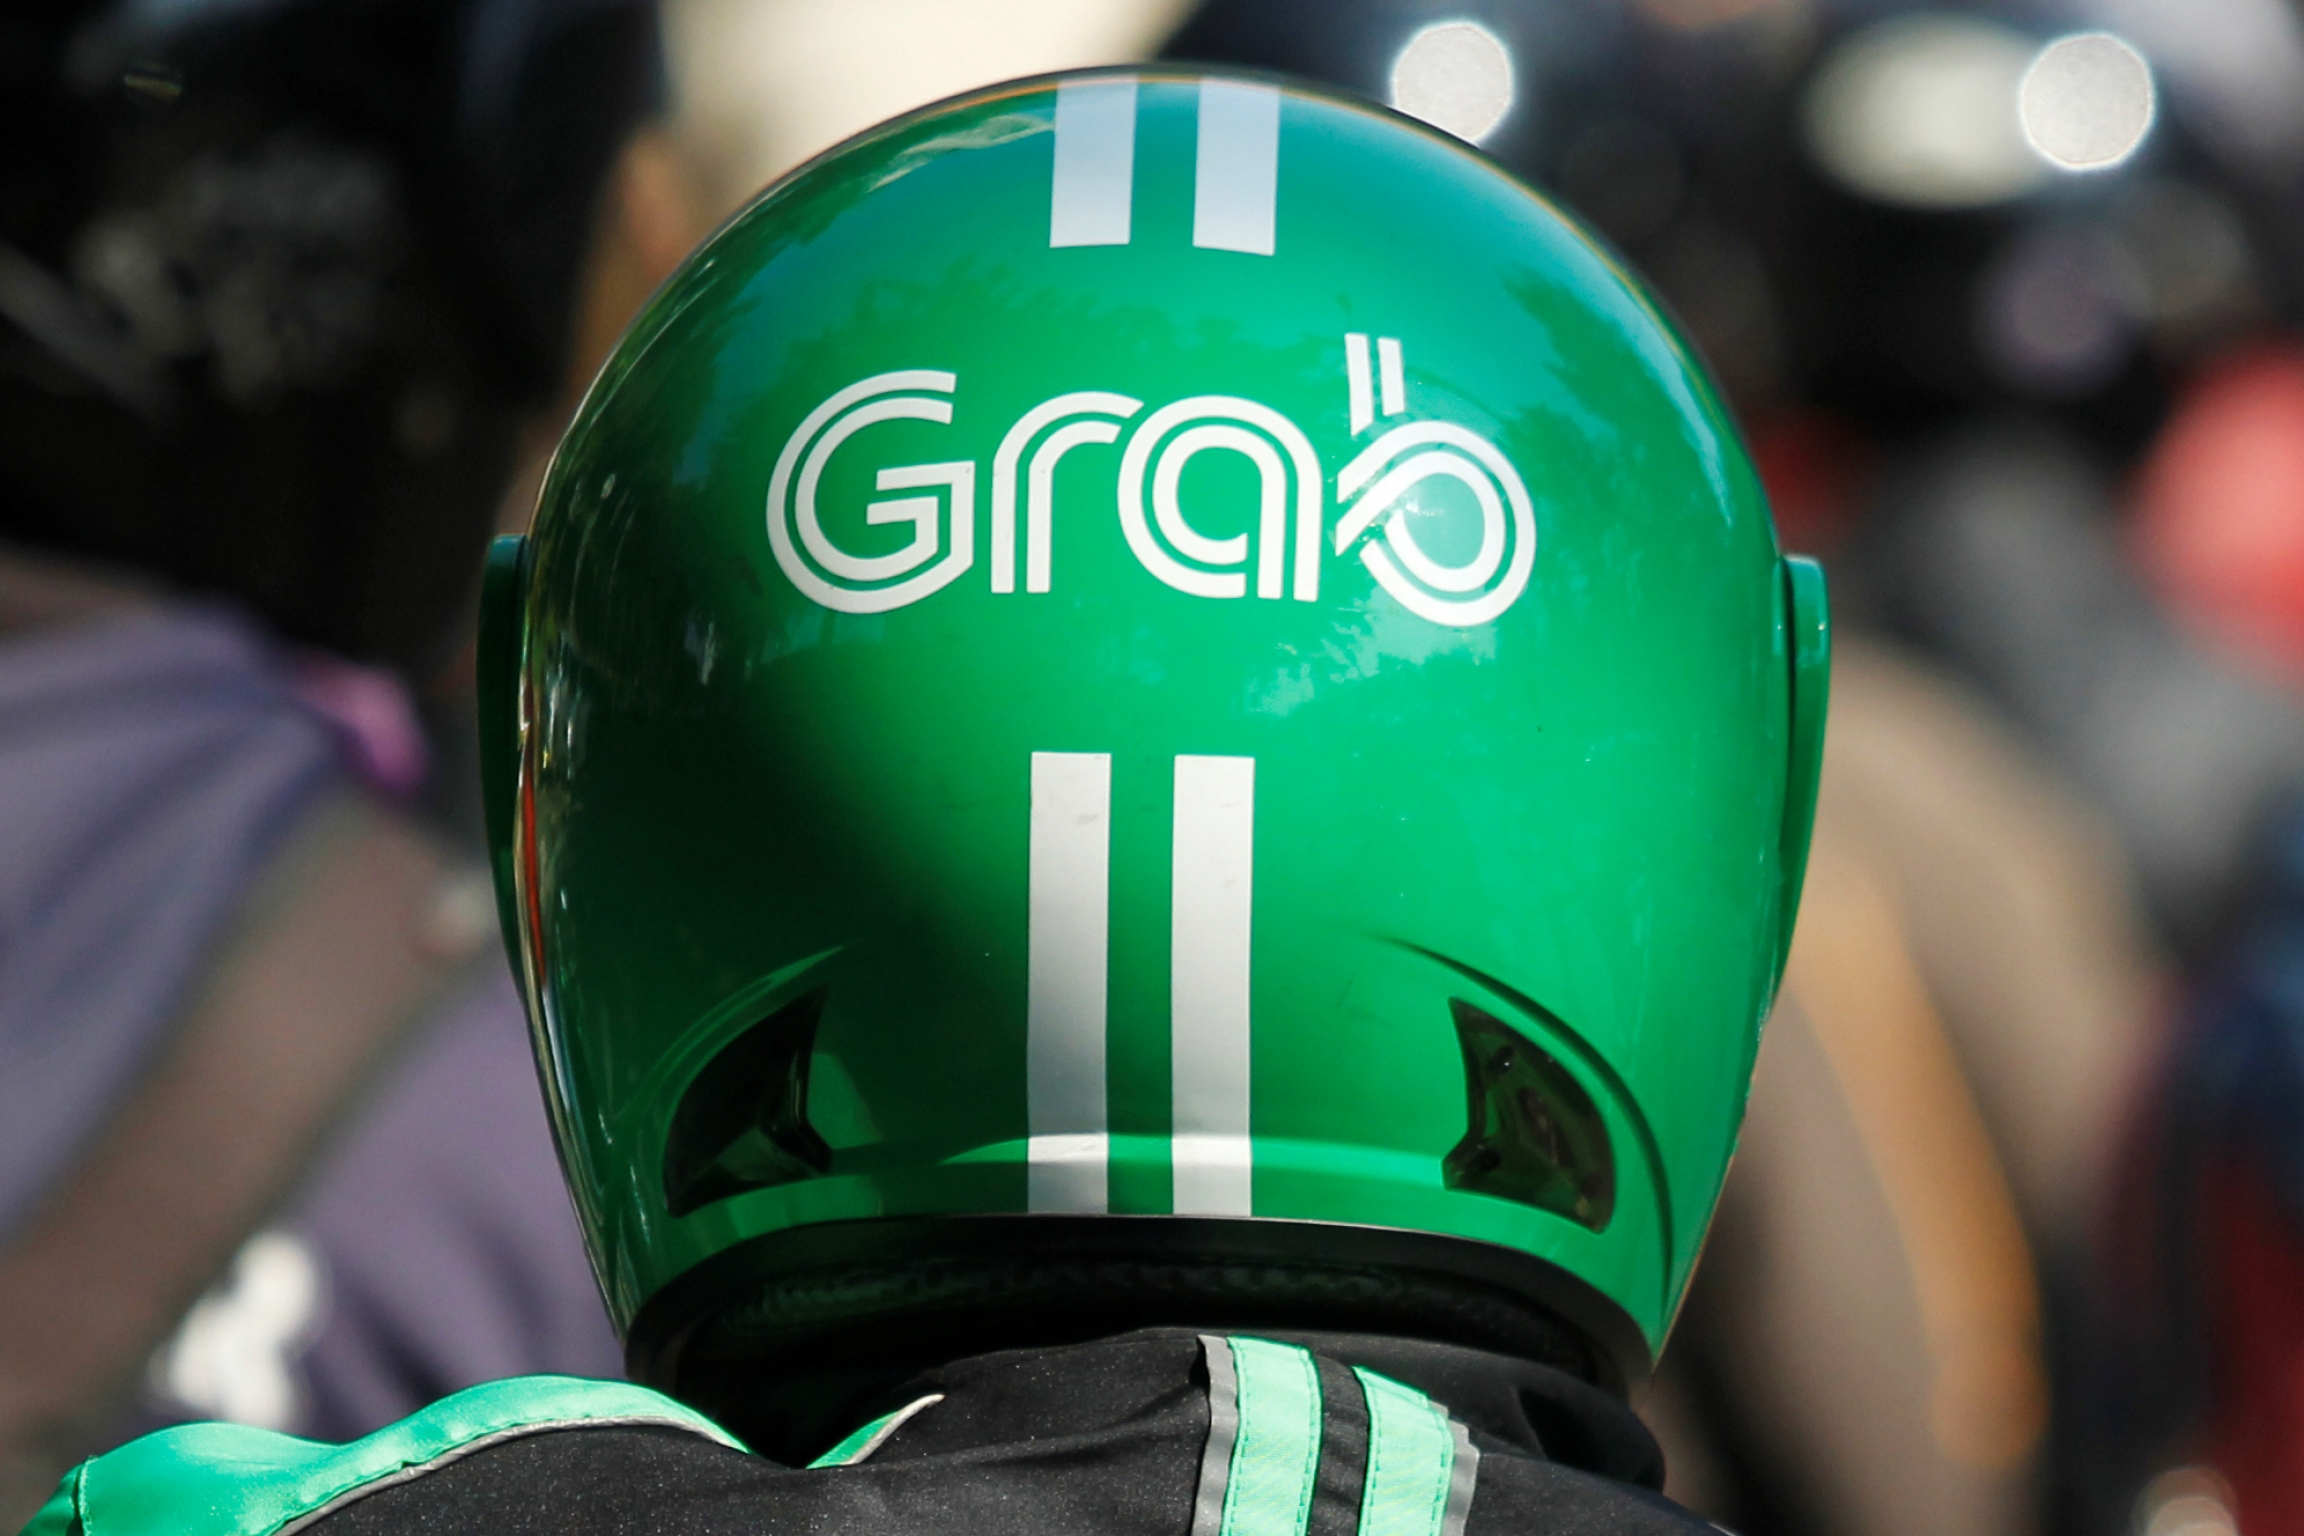 A Grab green helmet up close